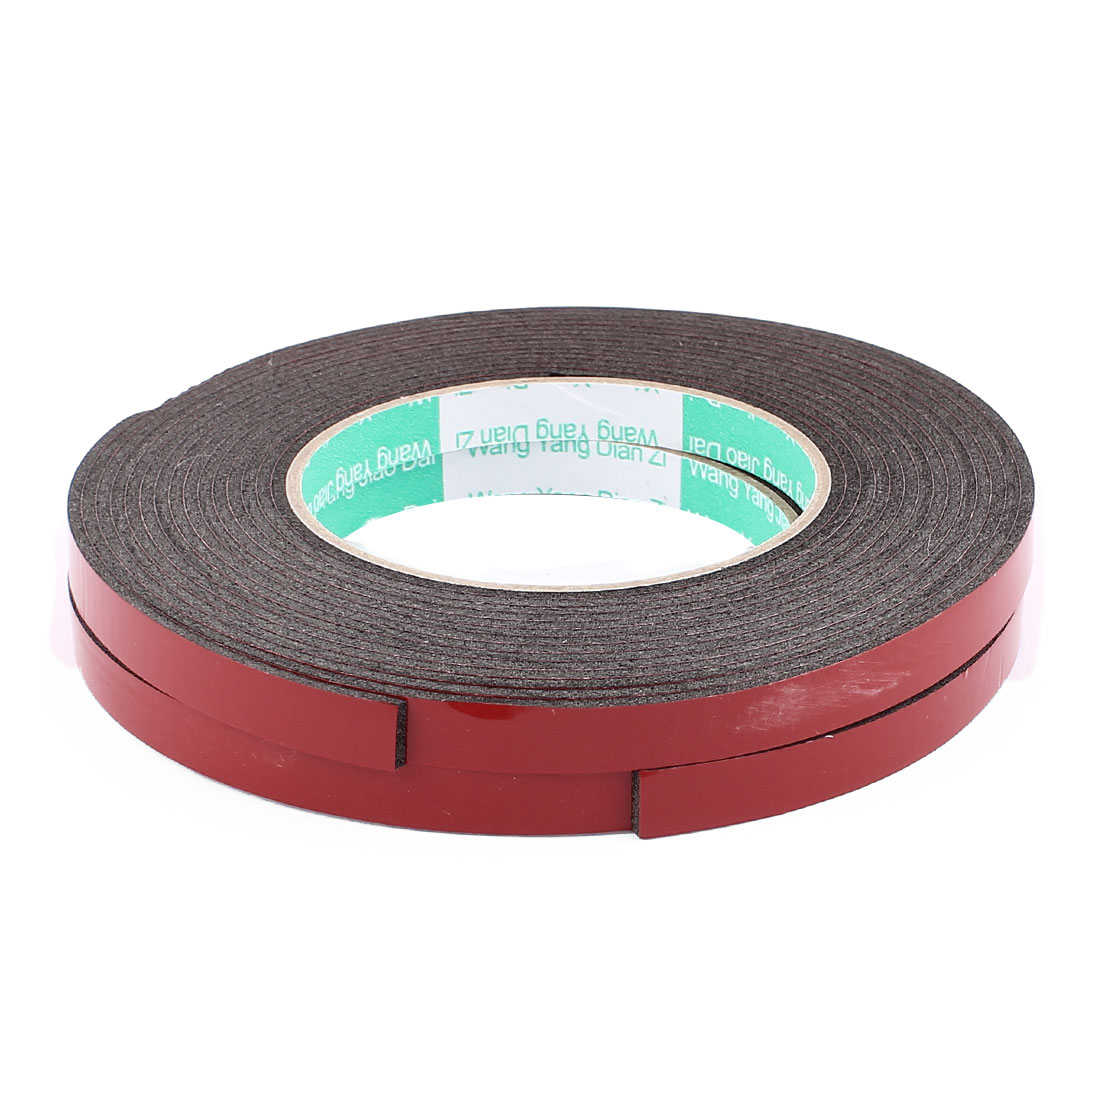 2pcs Black Strong Double Sided Adhesive Tape Sponge Tape 10MM Width 5M Long